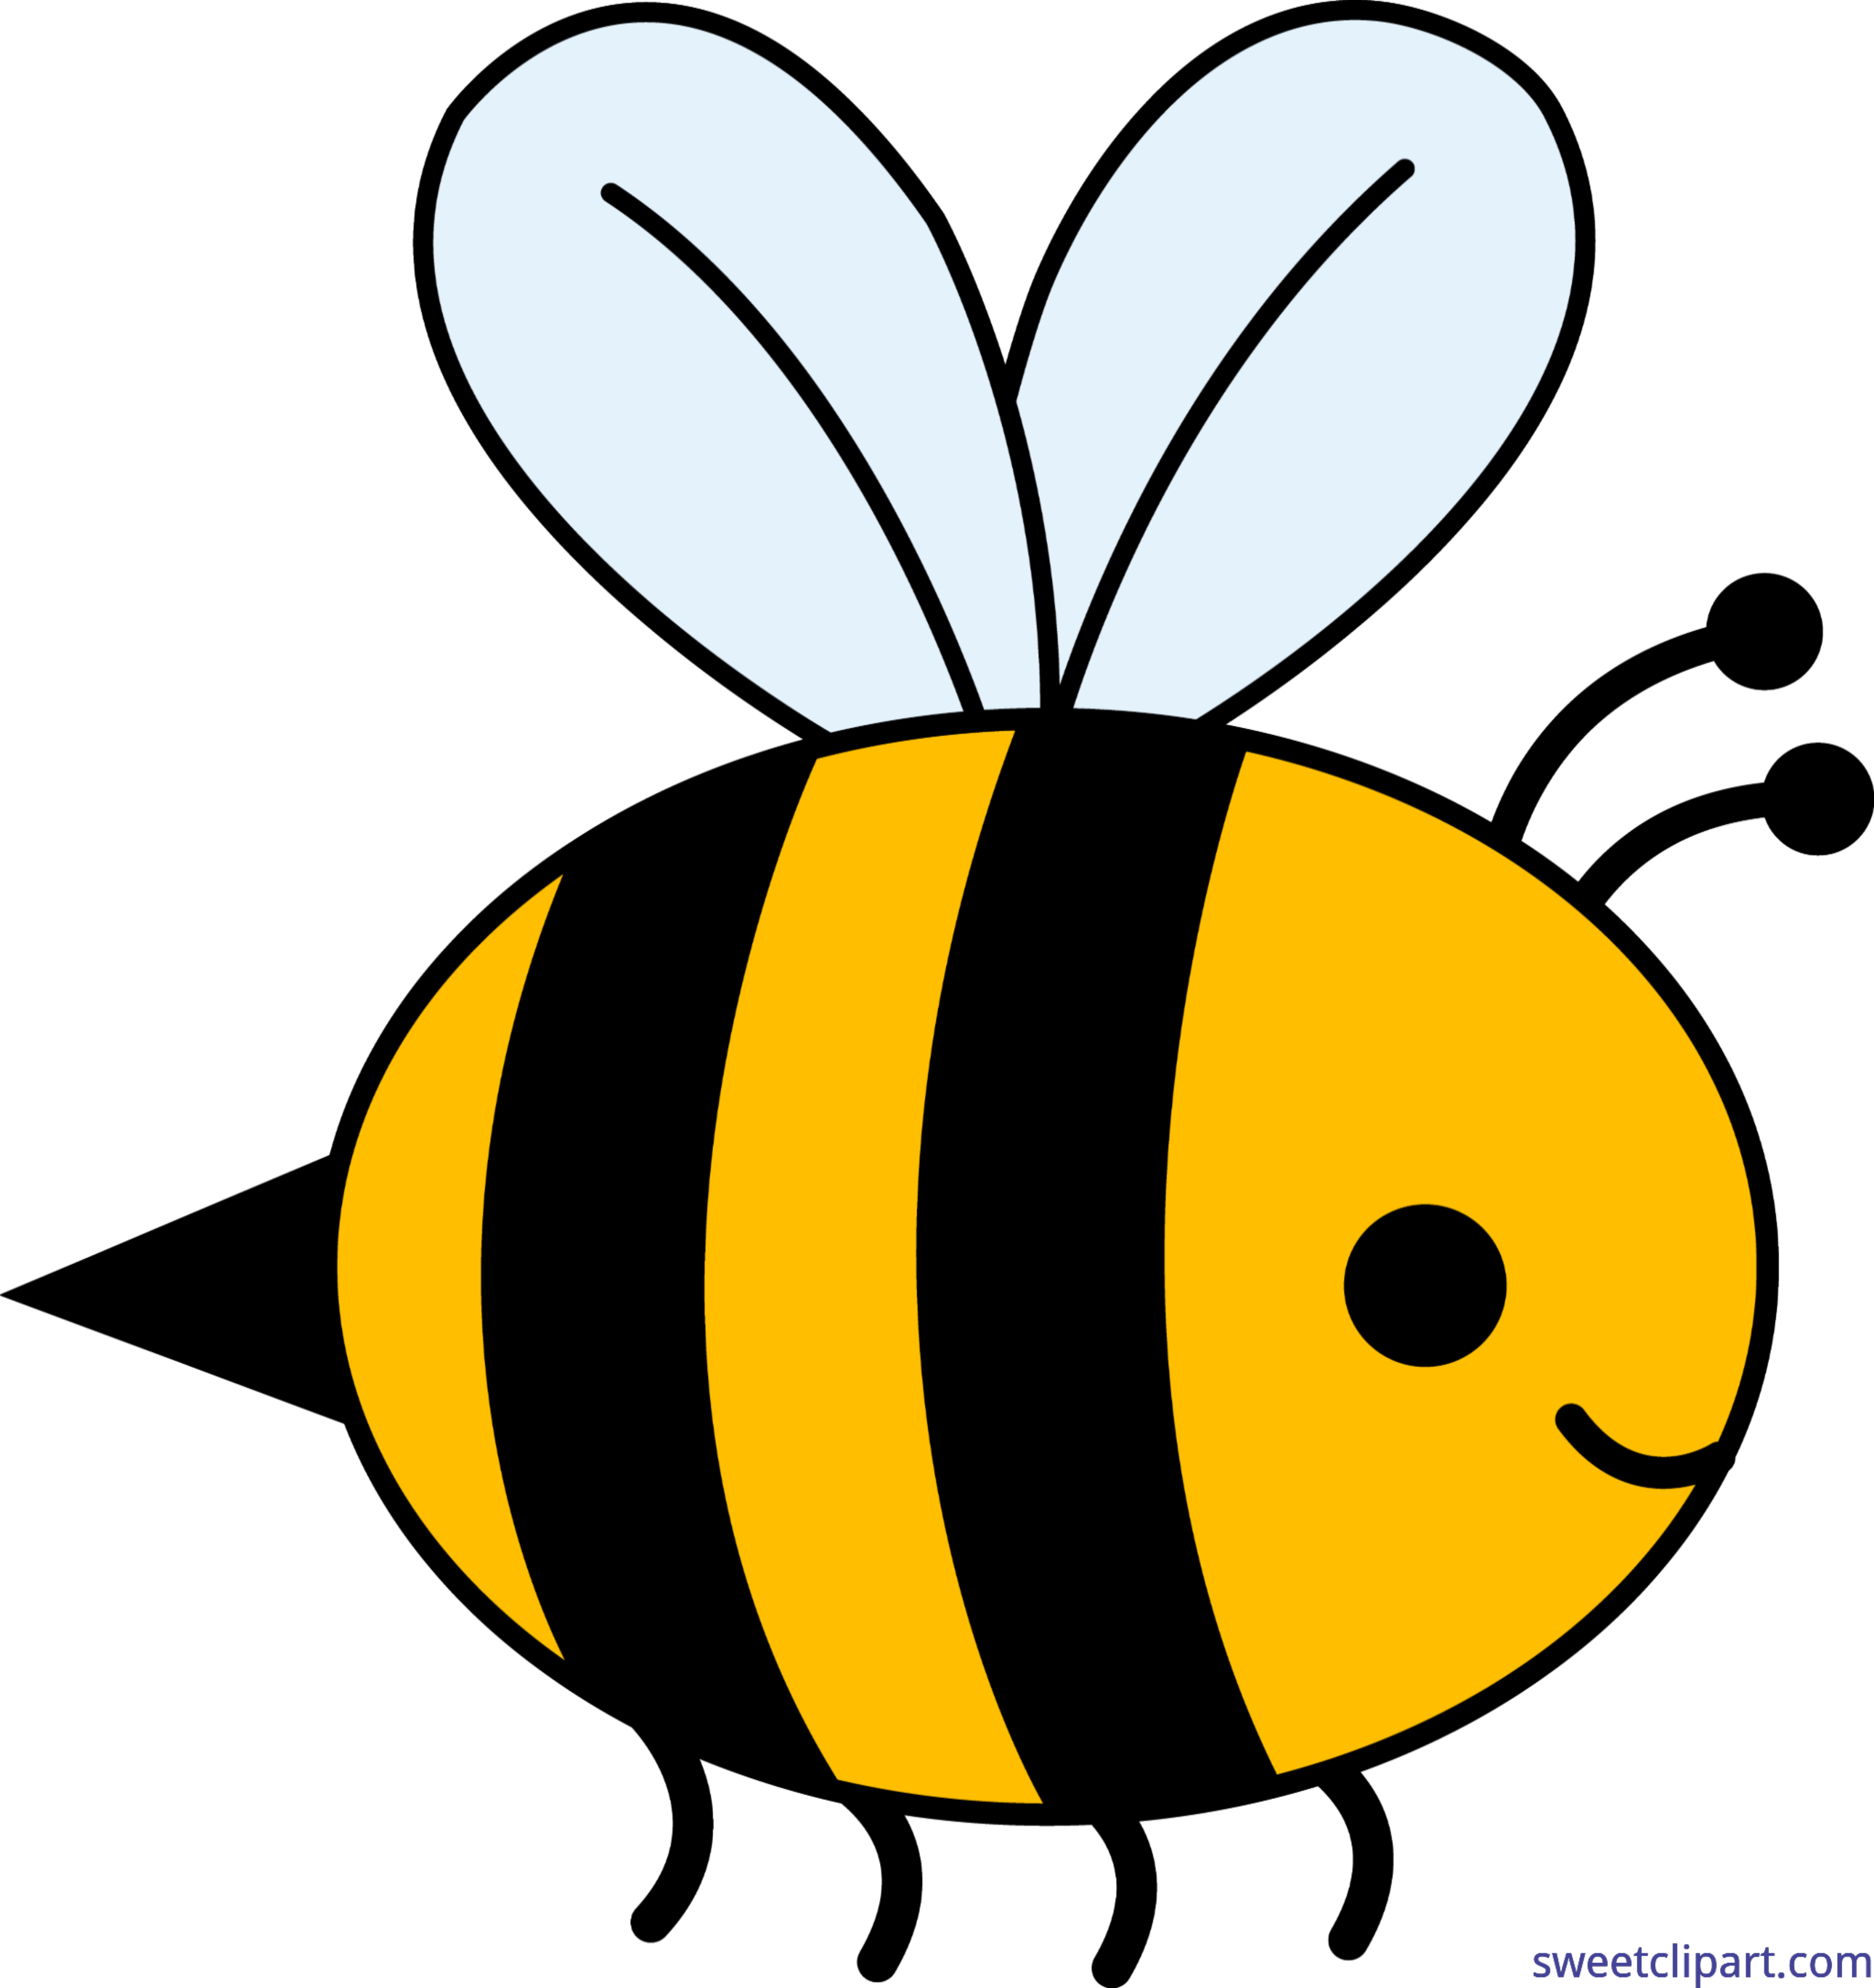 Bumble Bee Clip Art.